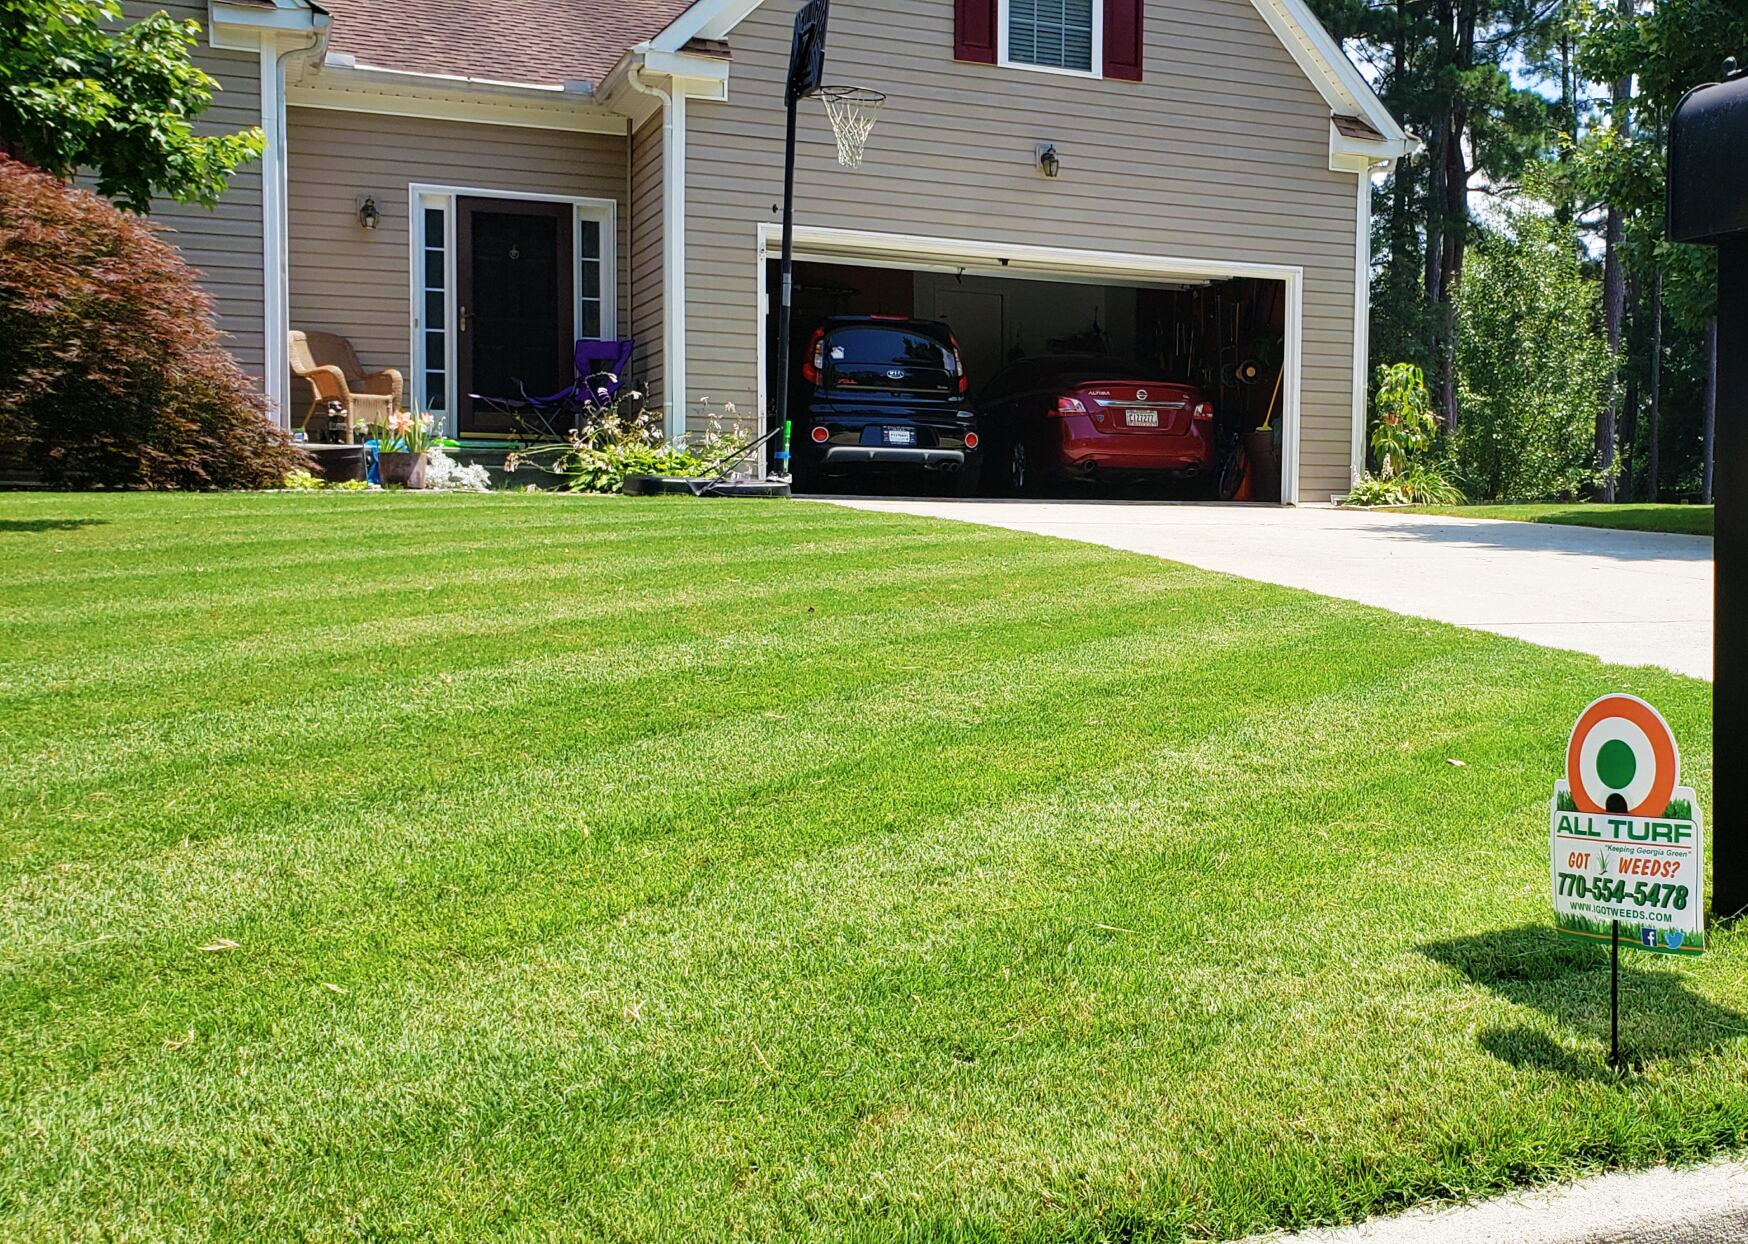 midtown atlanta lawn care, lawn care in midtown atlanta, weed control in midtown atlanta